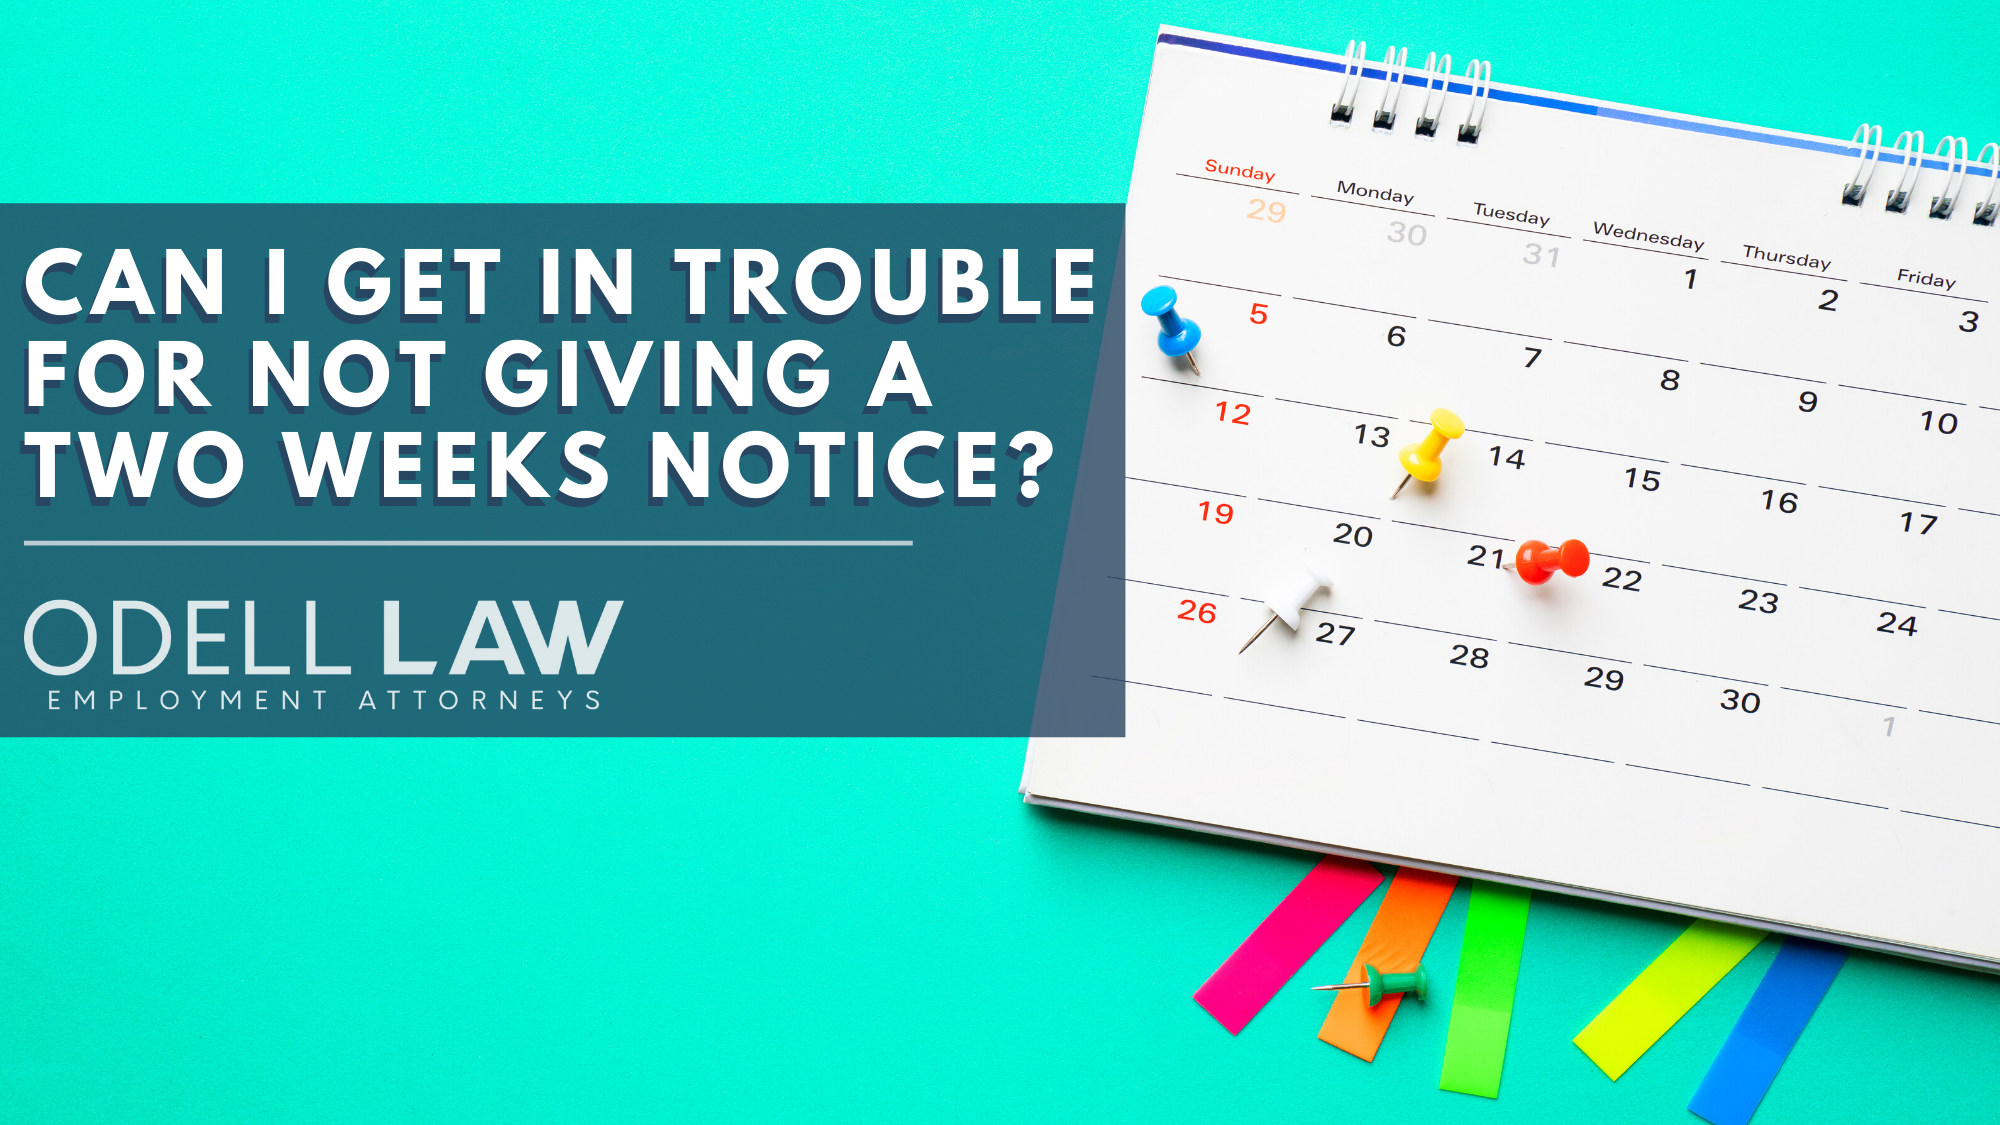 Do I have to give a two weeks notice?